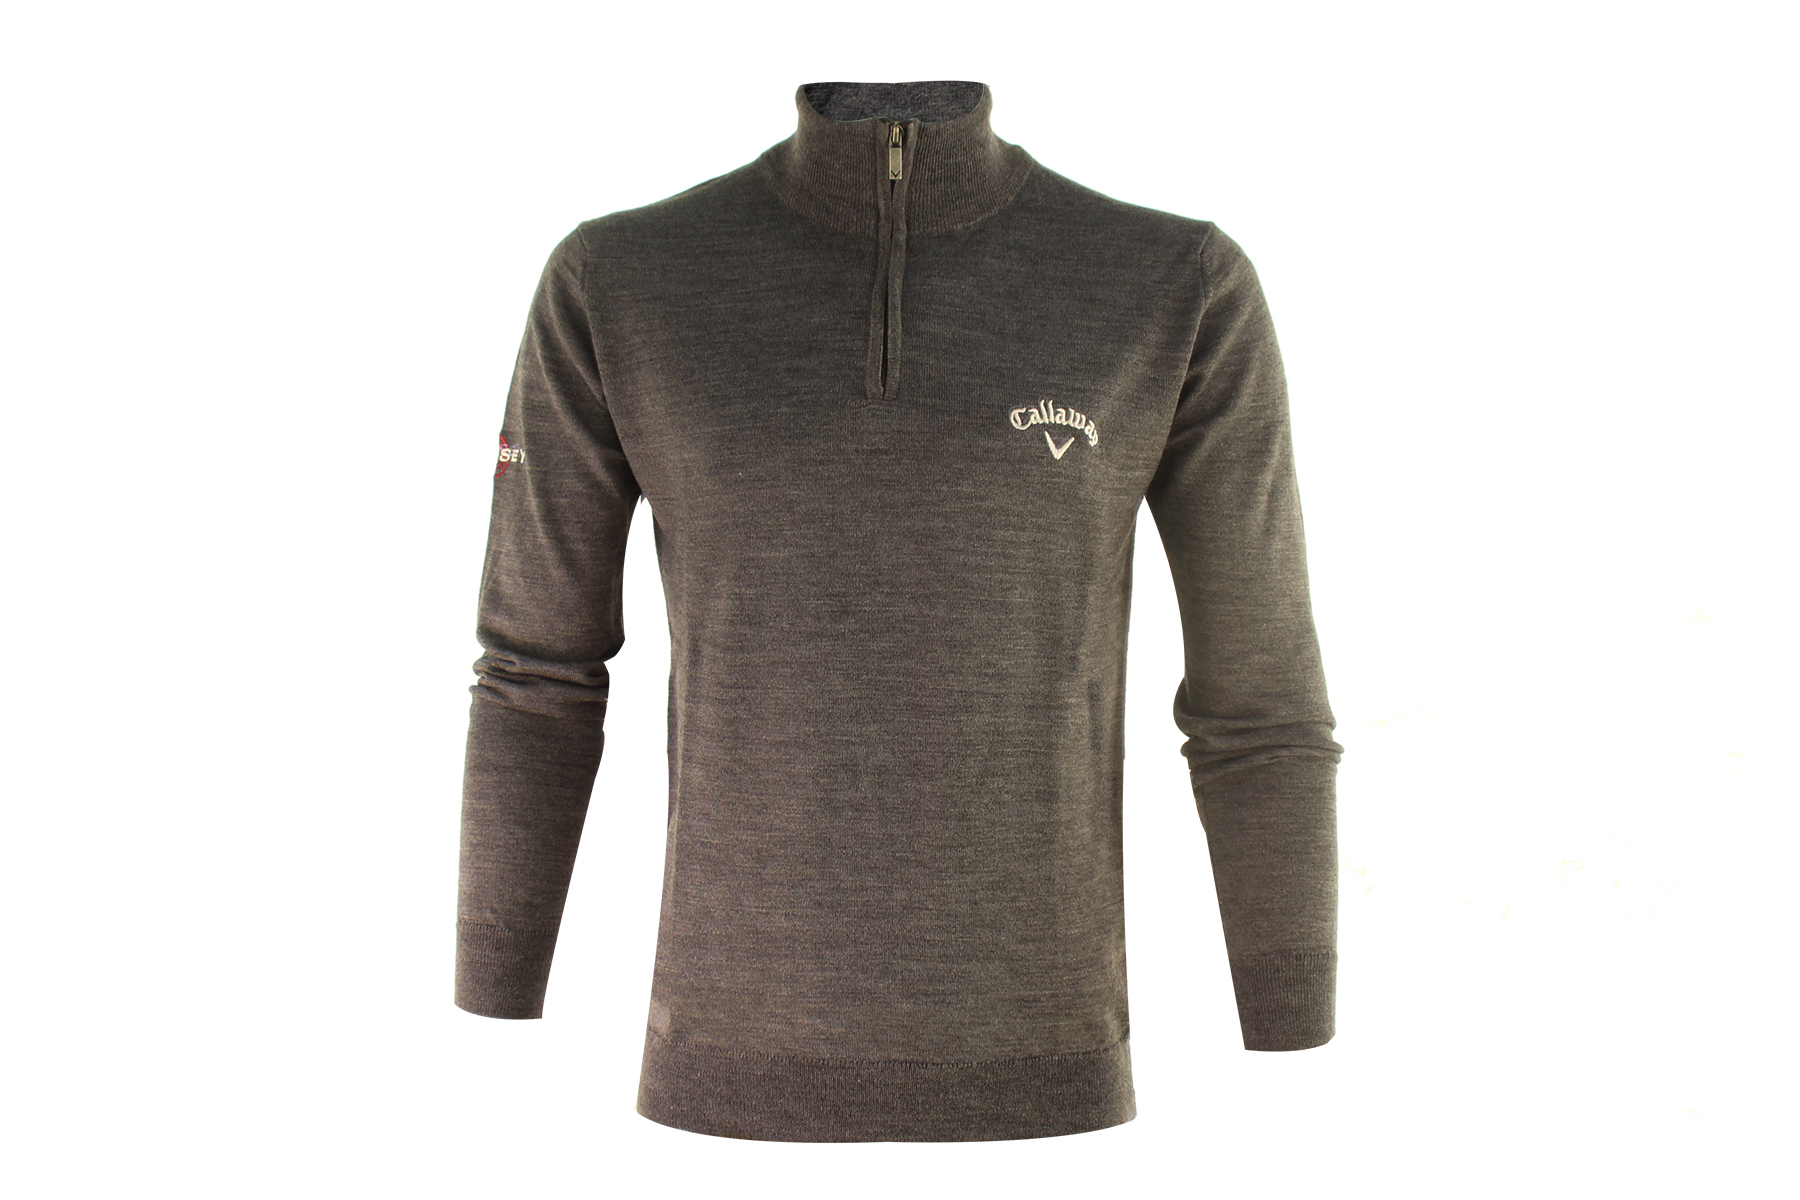 Callaway golf 1 4 zip sweater from american golf for Housse zip collection captur